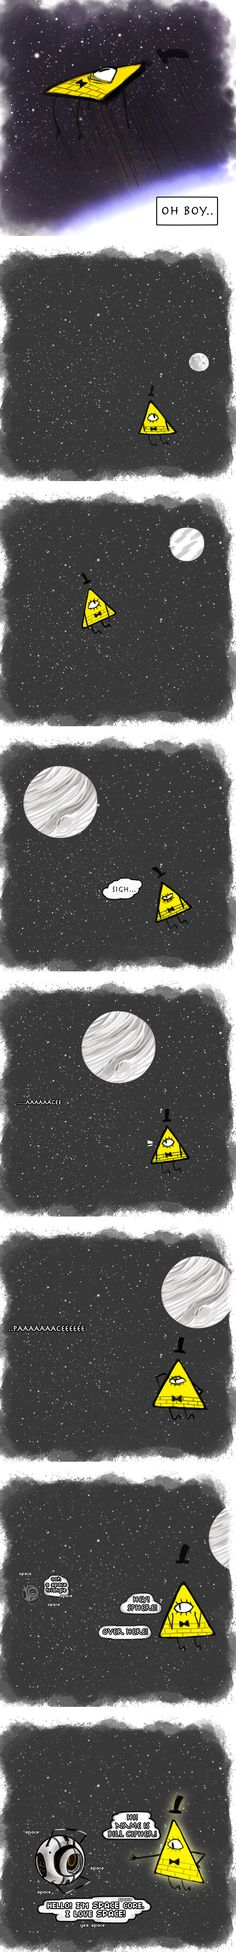 oh space. bill u need to meet luna! Gravity Falls Theory, Reverse Gravity Falls, Reverse Falls, Low Gravity, Aperture Science, Fancy Words, Bill Cipher, Calm Before The Storm, Fandom Crossover